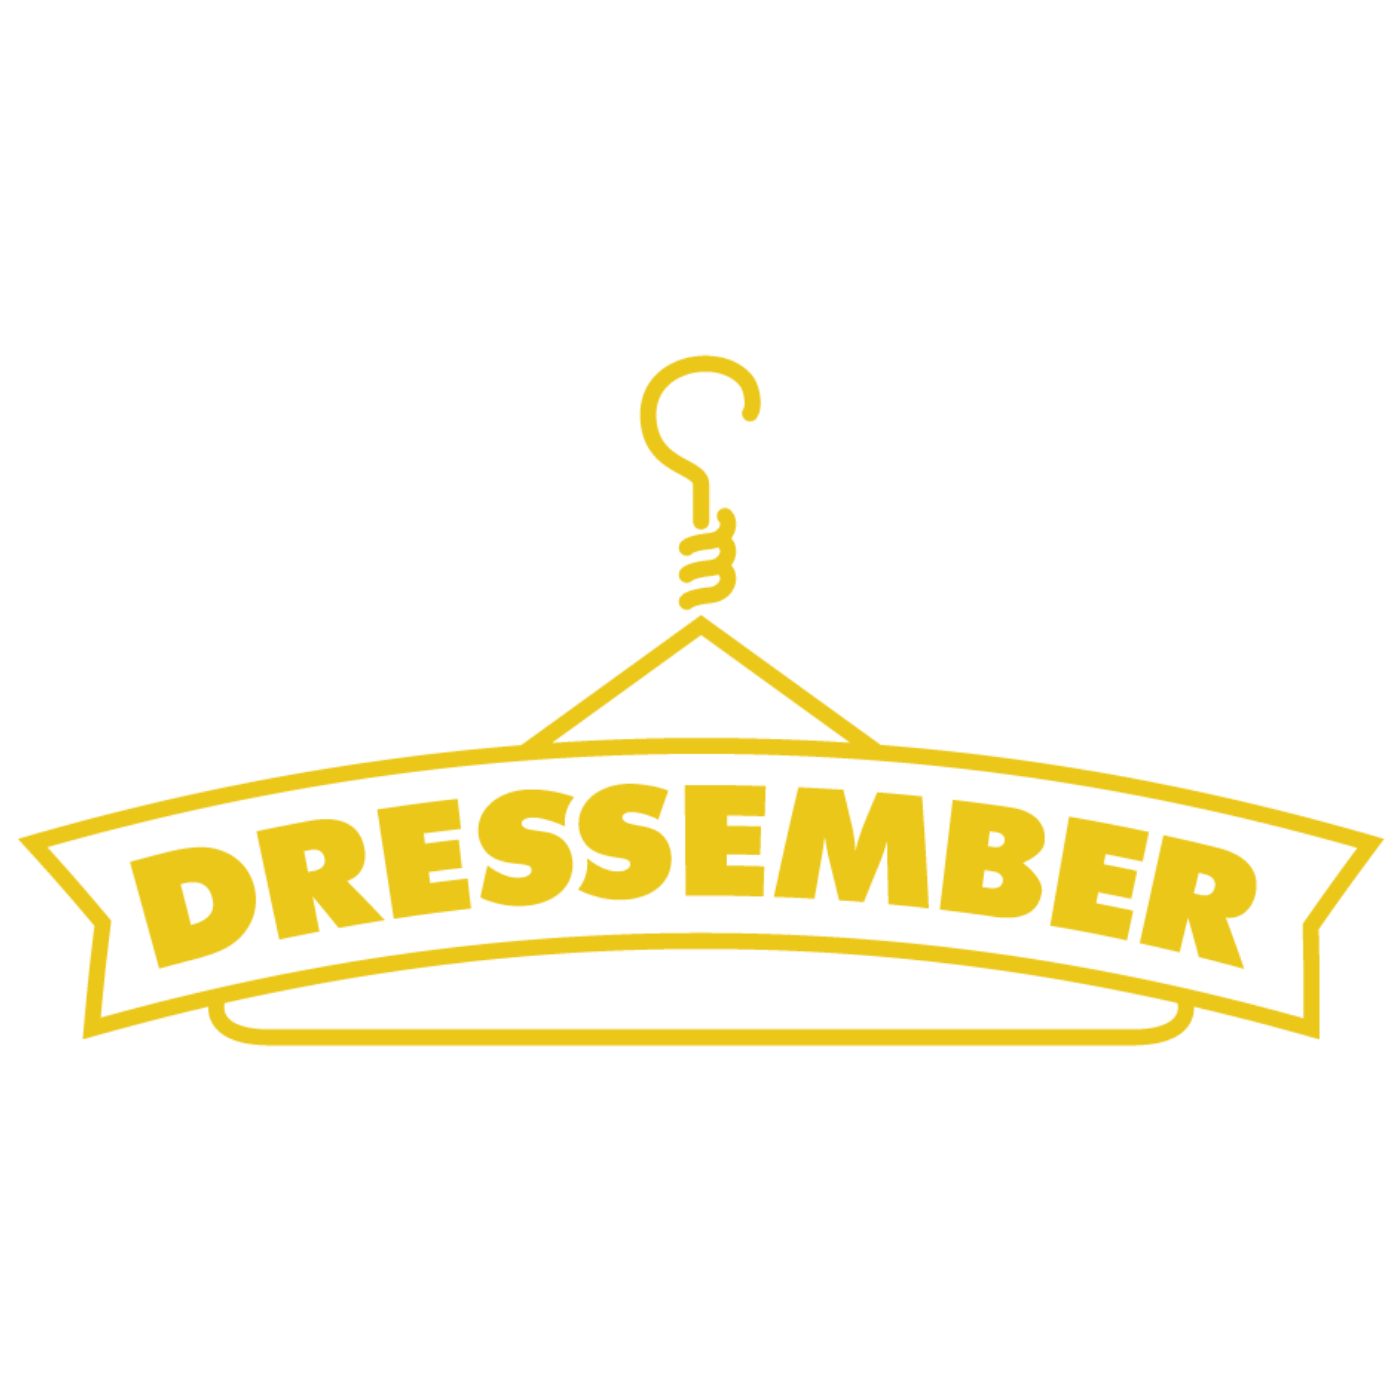 Dressember  wants to create a world without slavery. In December 2018, I gathered a small team of women who wore dresses every day to highlight the millions of women around the world who are enslaved and invited donations to end this evil. In 2017, I raised over $2,000; this year,  my team raised $3,692  .